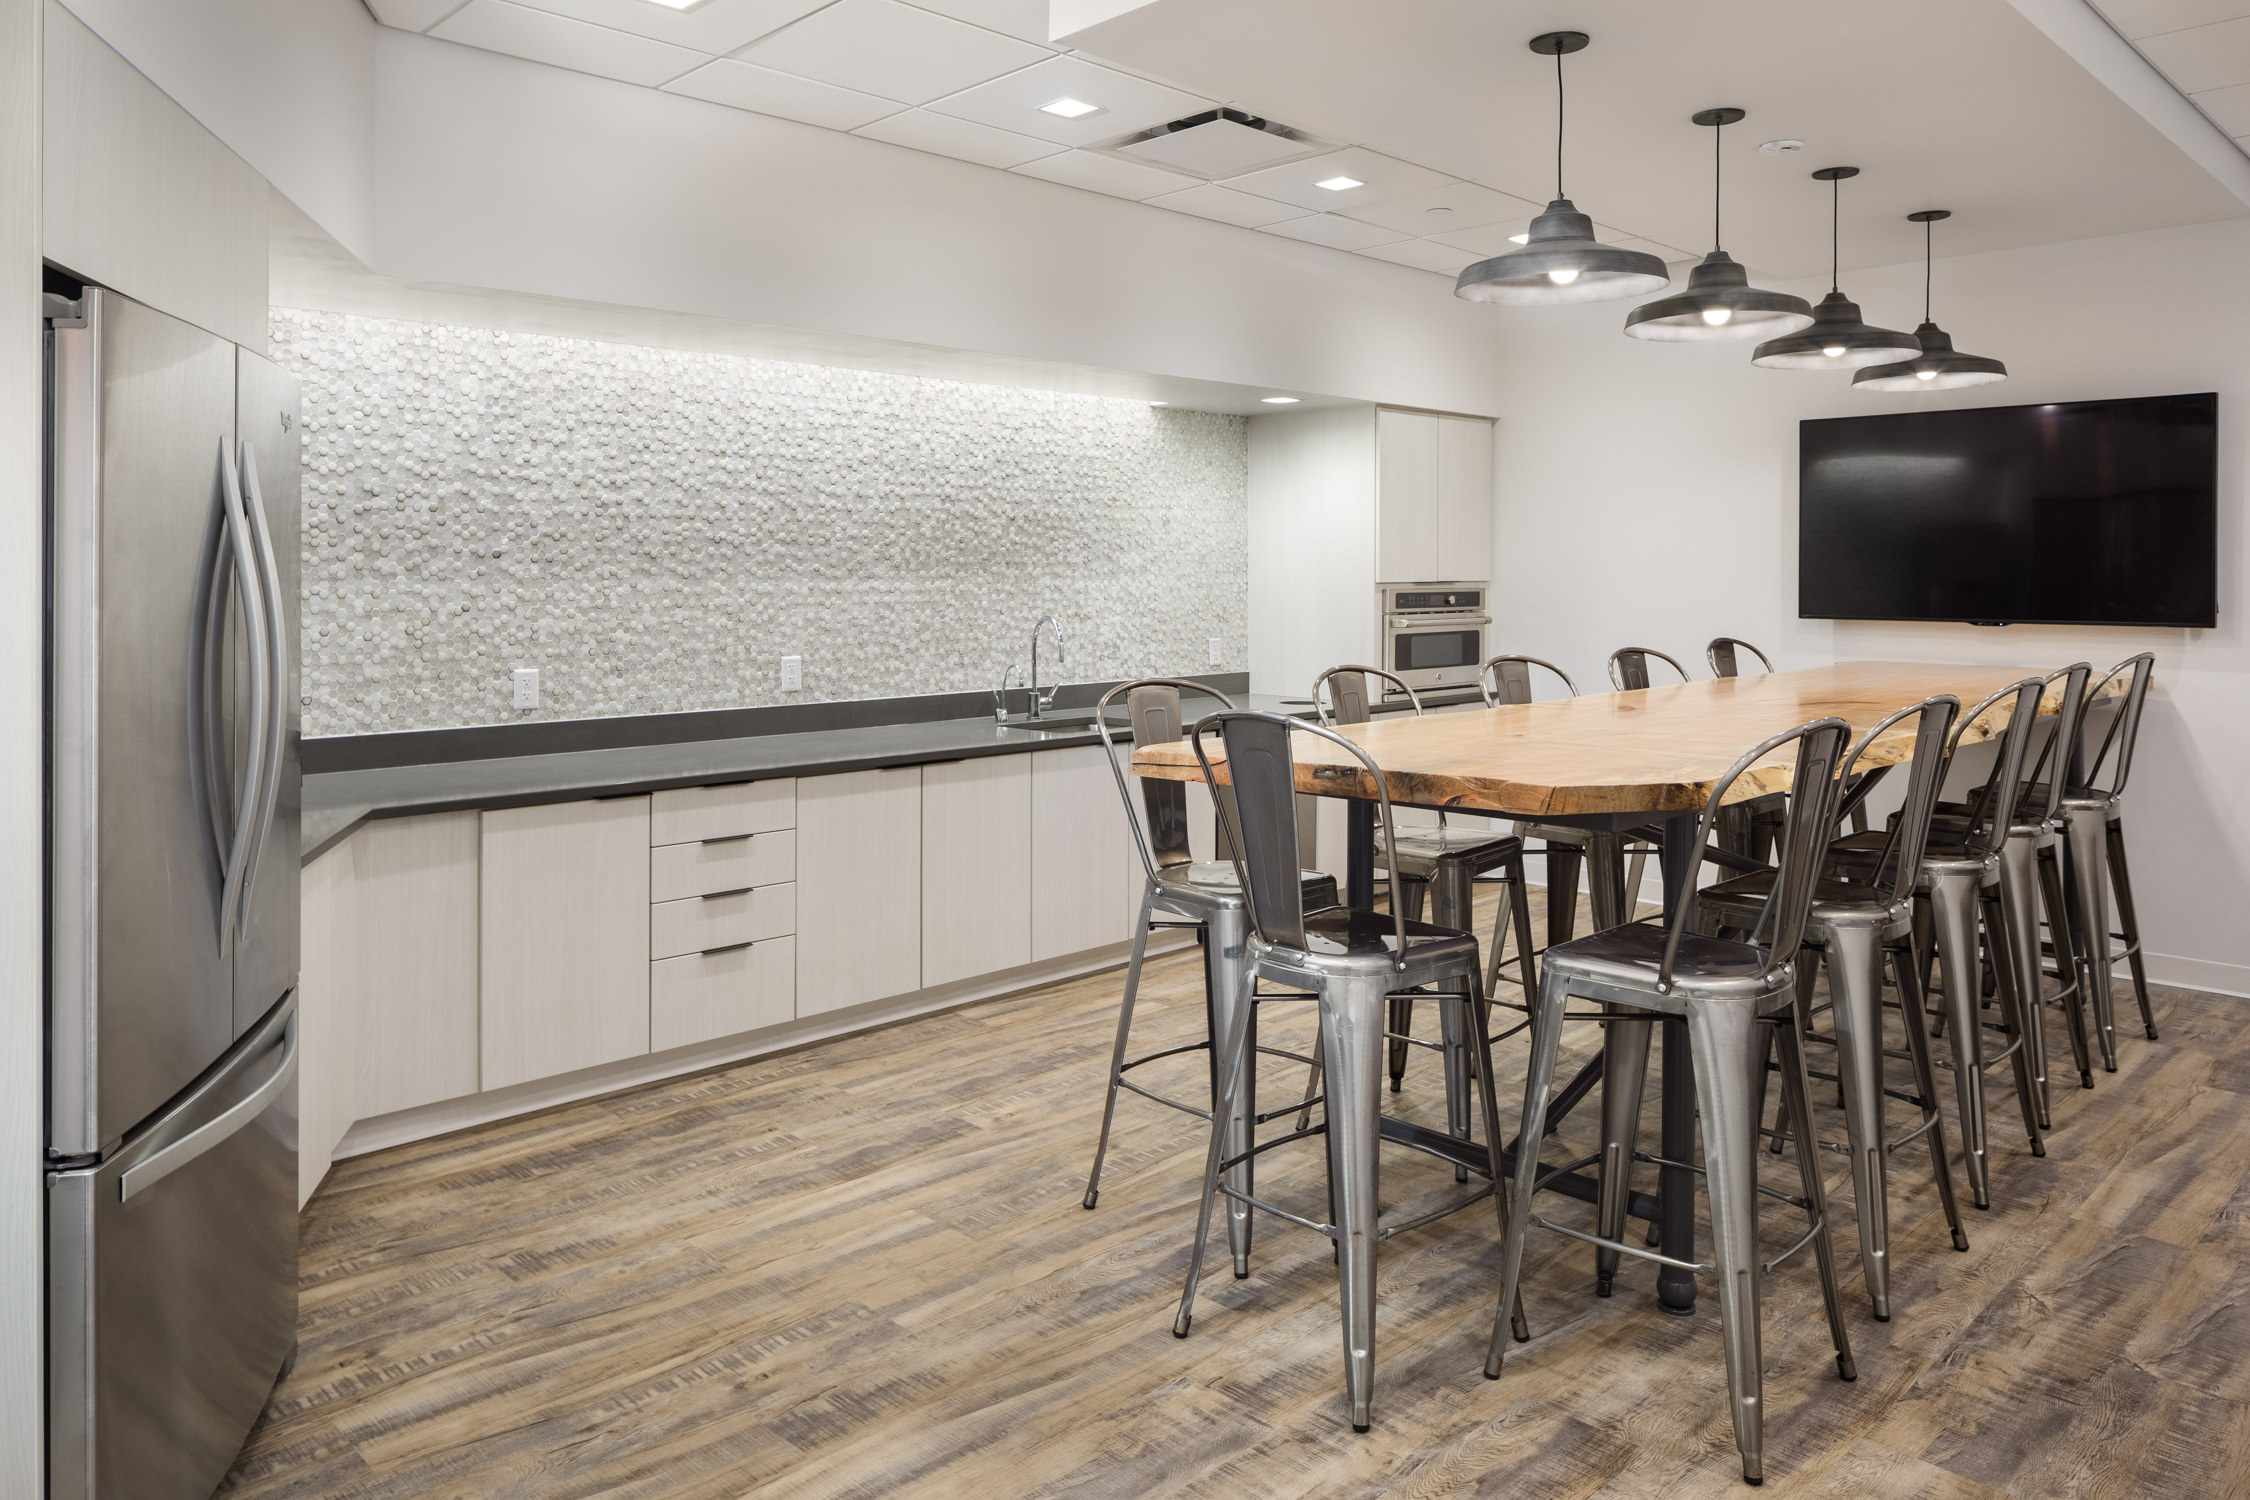 An overall photo of the modern hex wall tile, undermount stainless steel sink, industrial stools and raw edge wood table in the employee lunch room at KPMG in Vermont taken by professional photographer Stina Booth